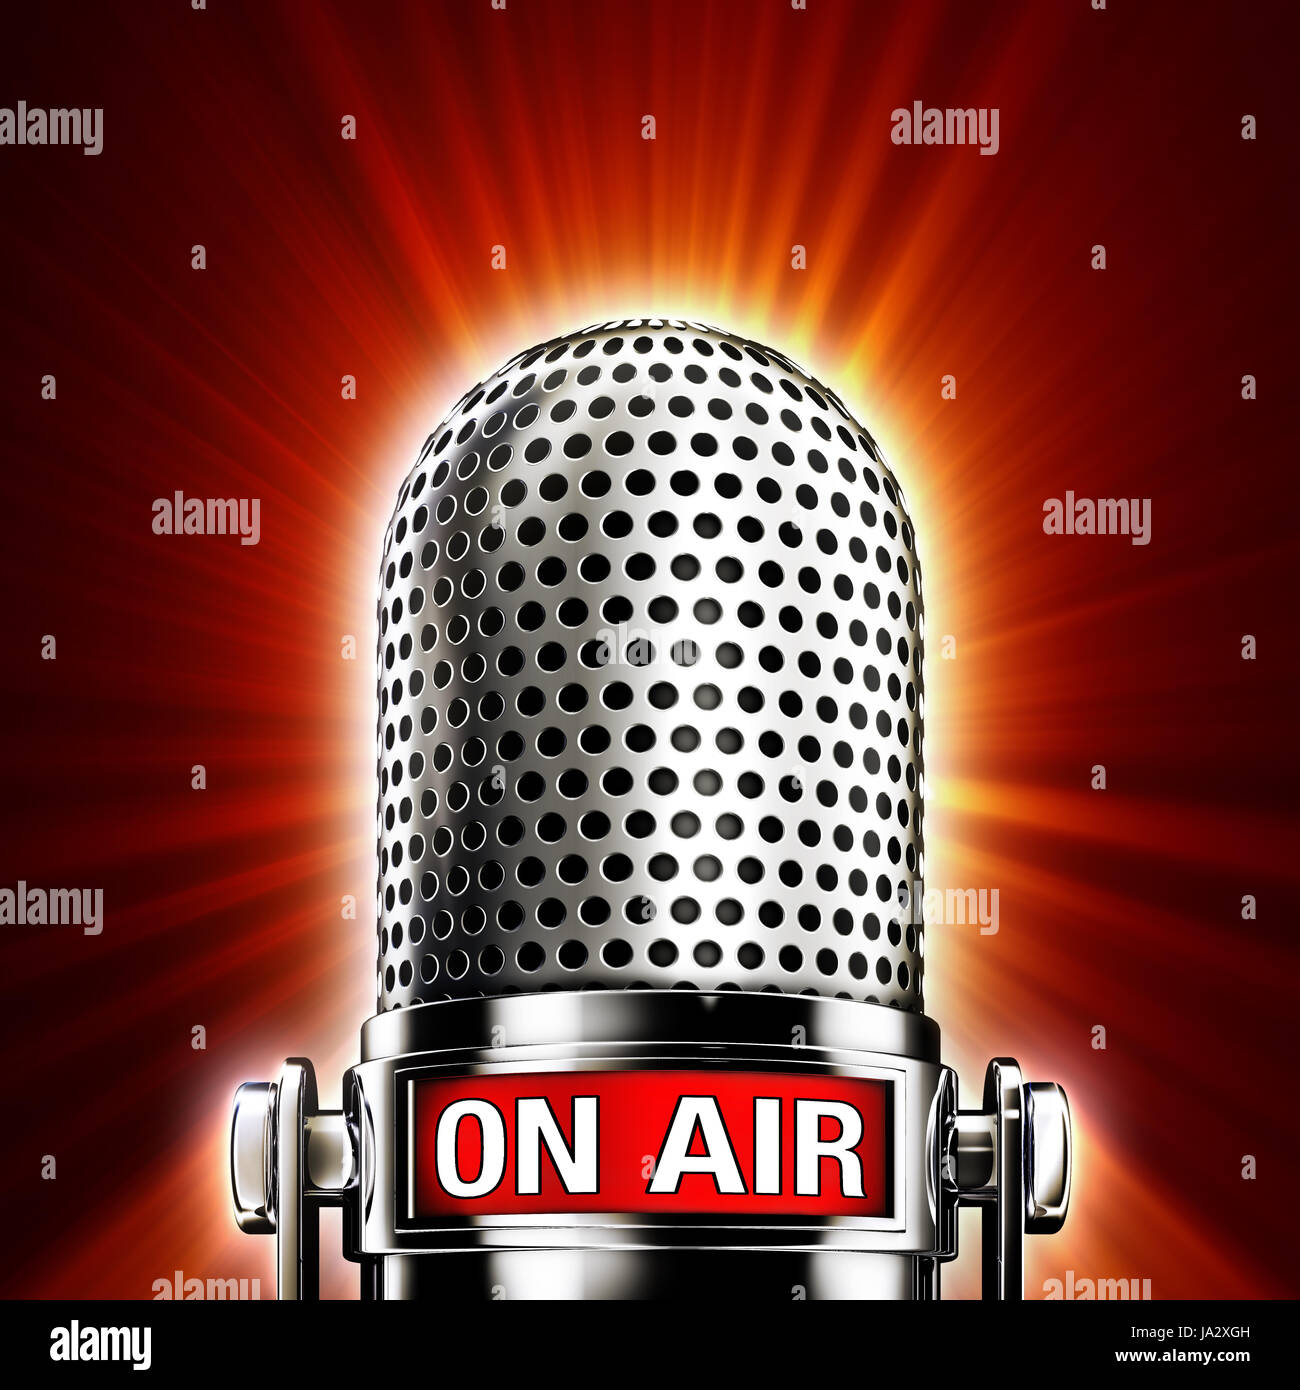 entertainment, radio, microphone, shipment, transmission, broadcast, sign, Stock Photo